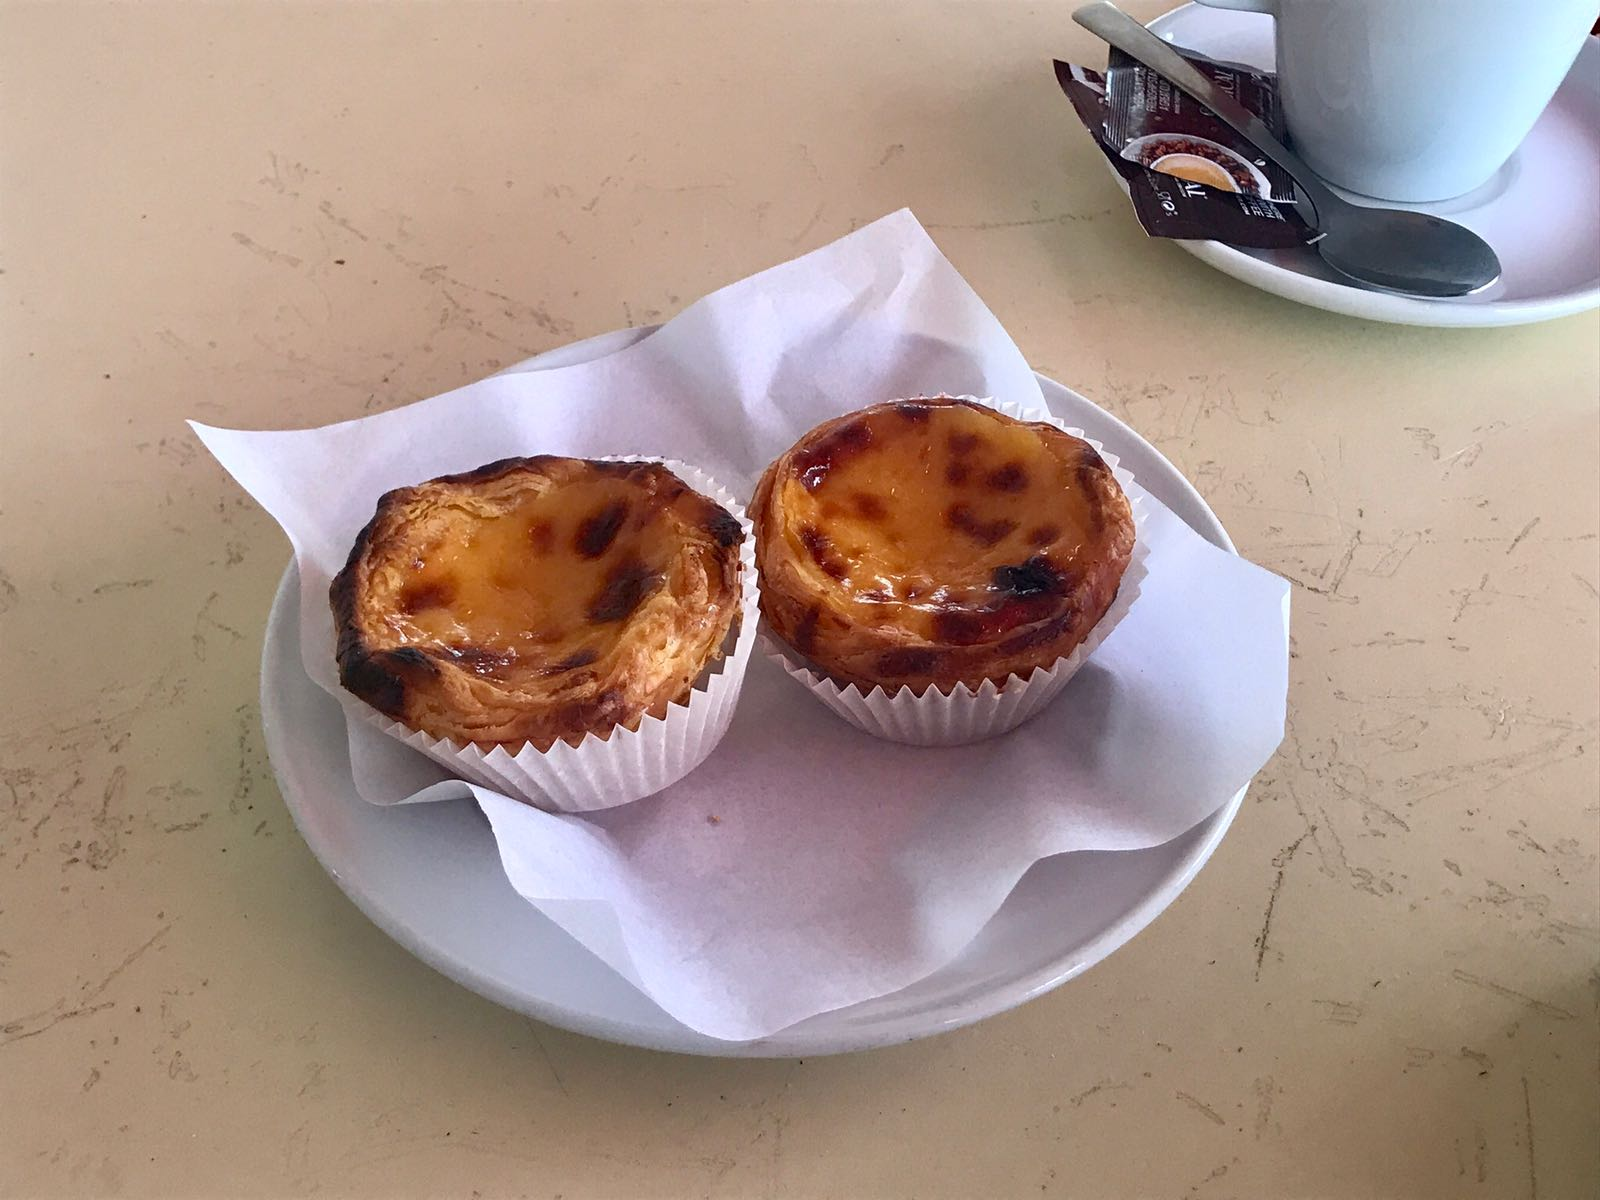 Pastel de nata, a rich custard tart with flaky pastry outside